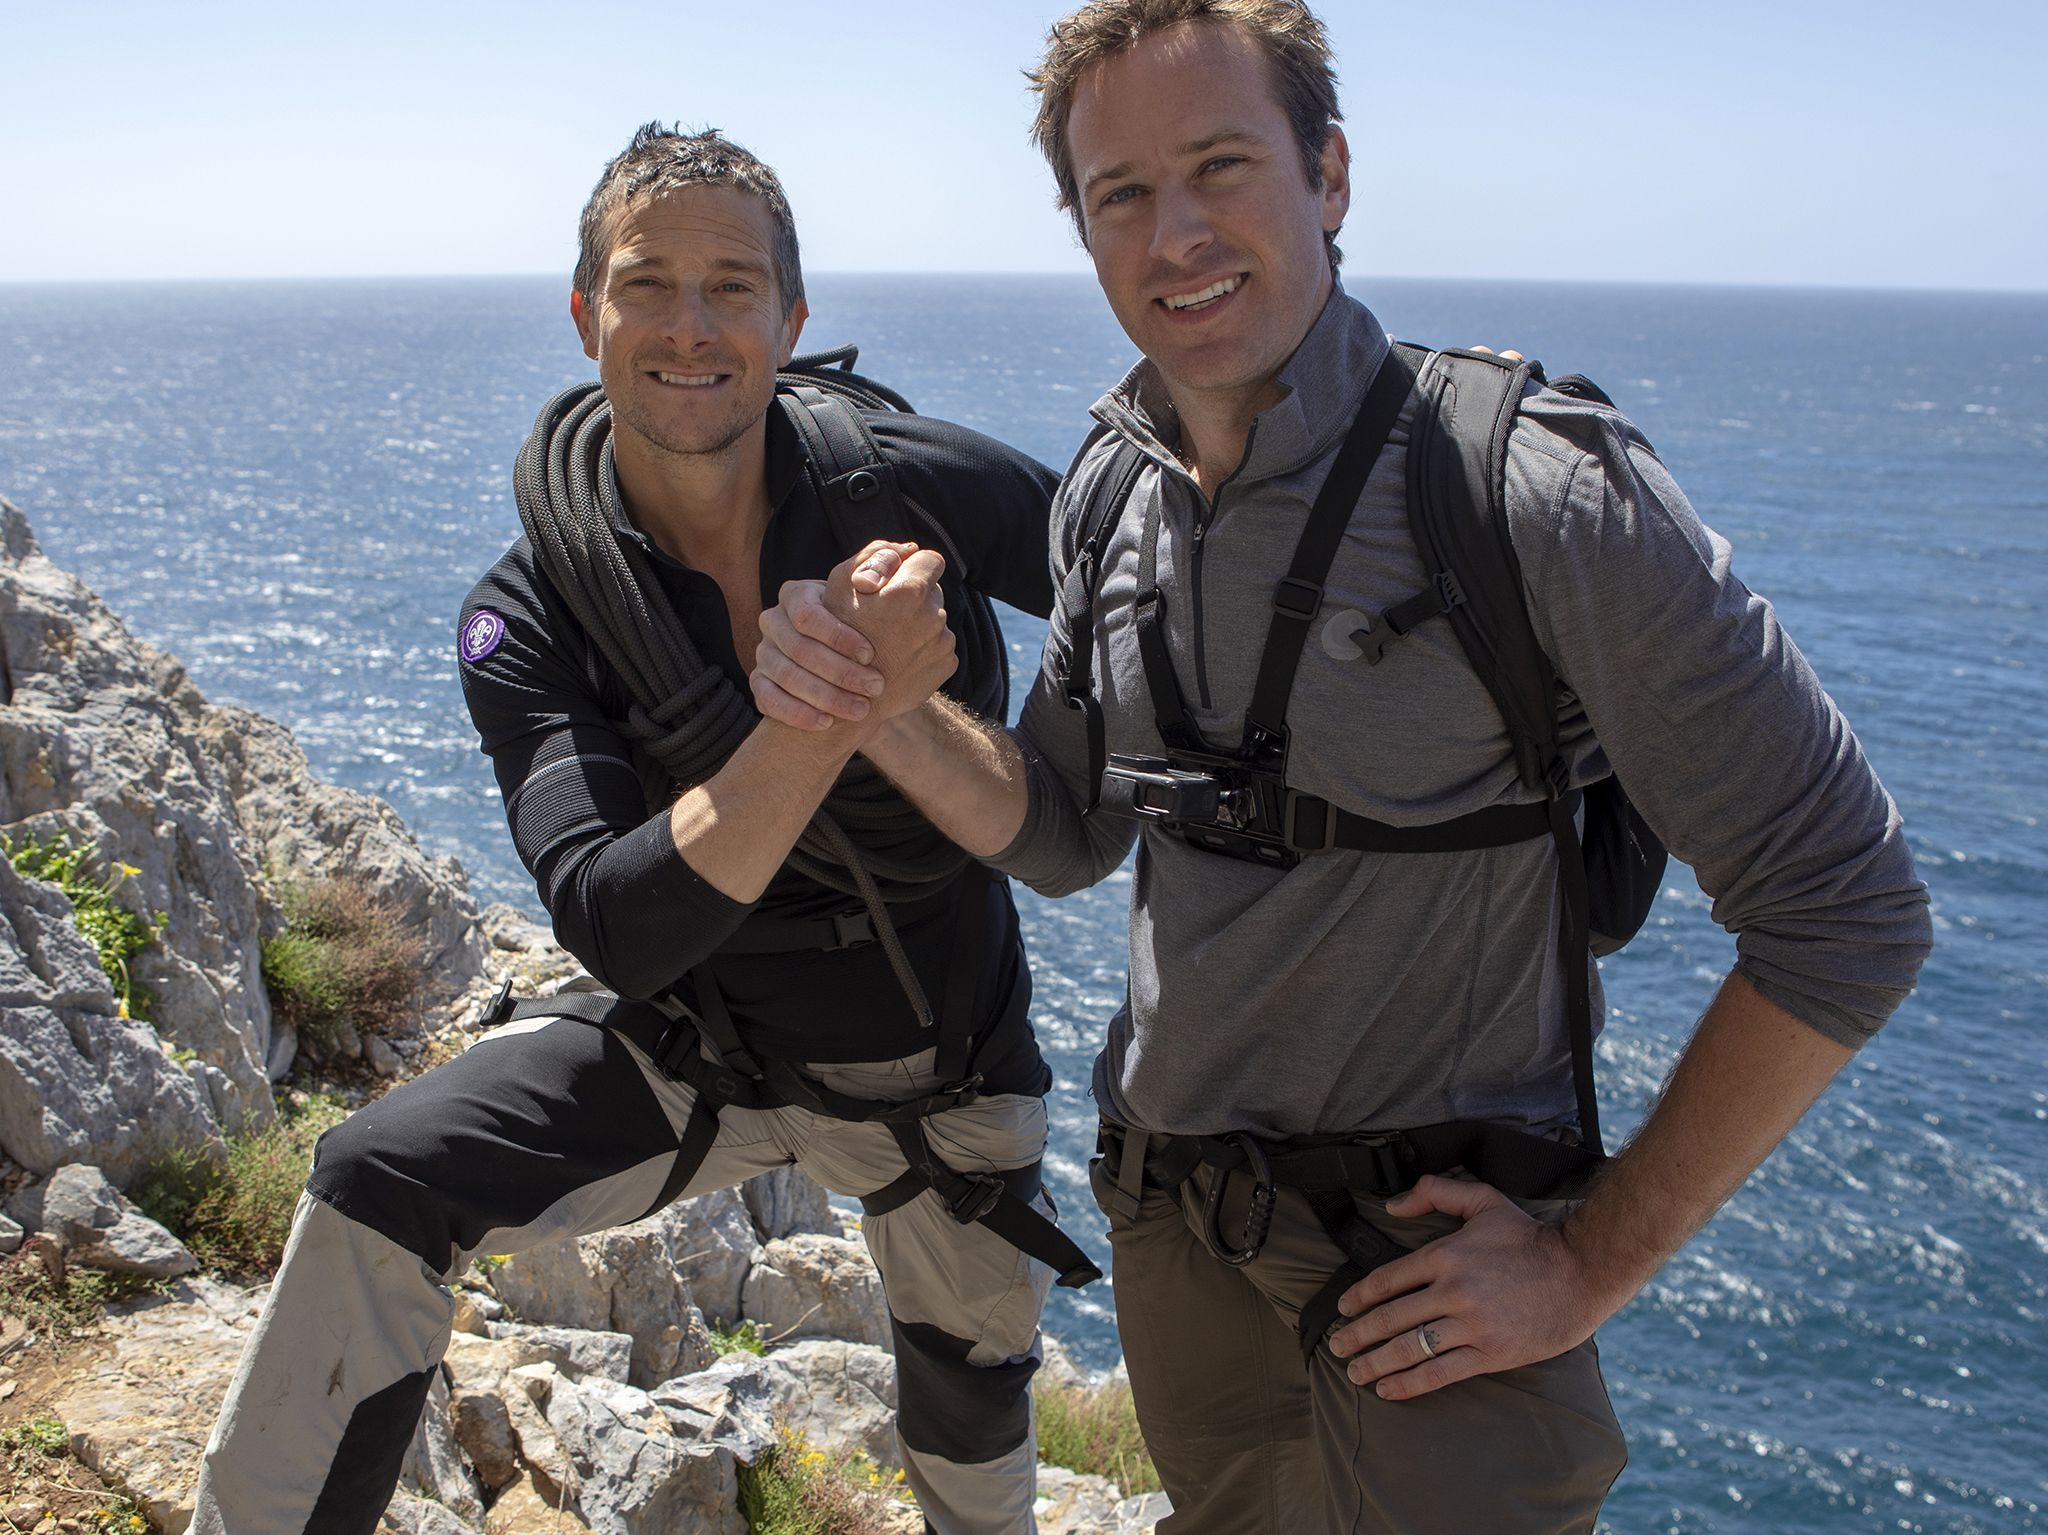 Sardinia, Italy: (L to R) Bear Grylls and Armie Hammer. This image is from Running Wild with... [Photo of the day - November 2019]